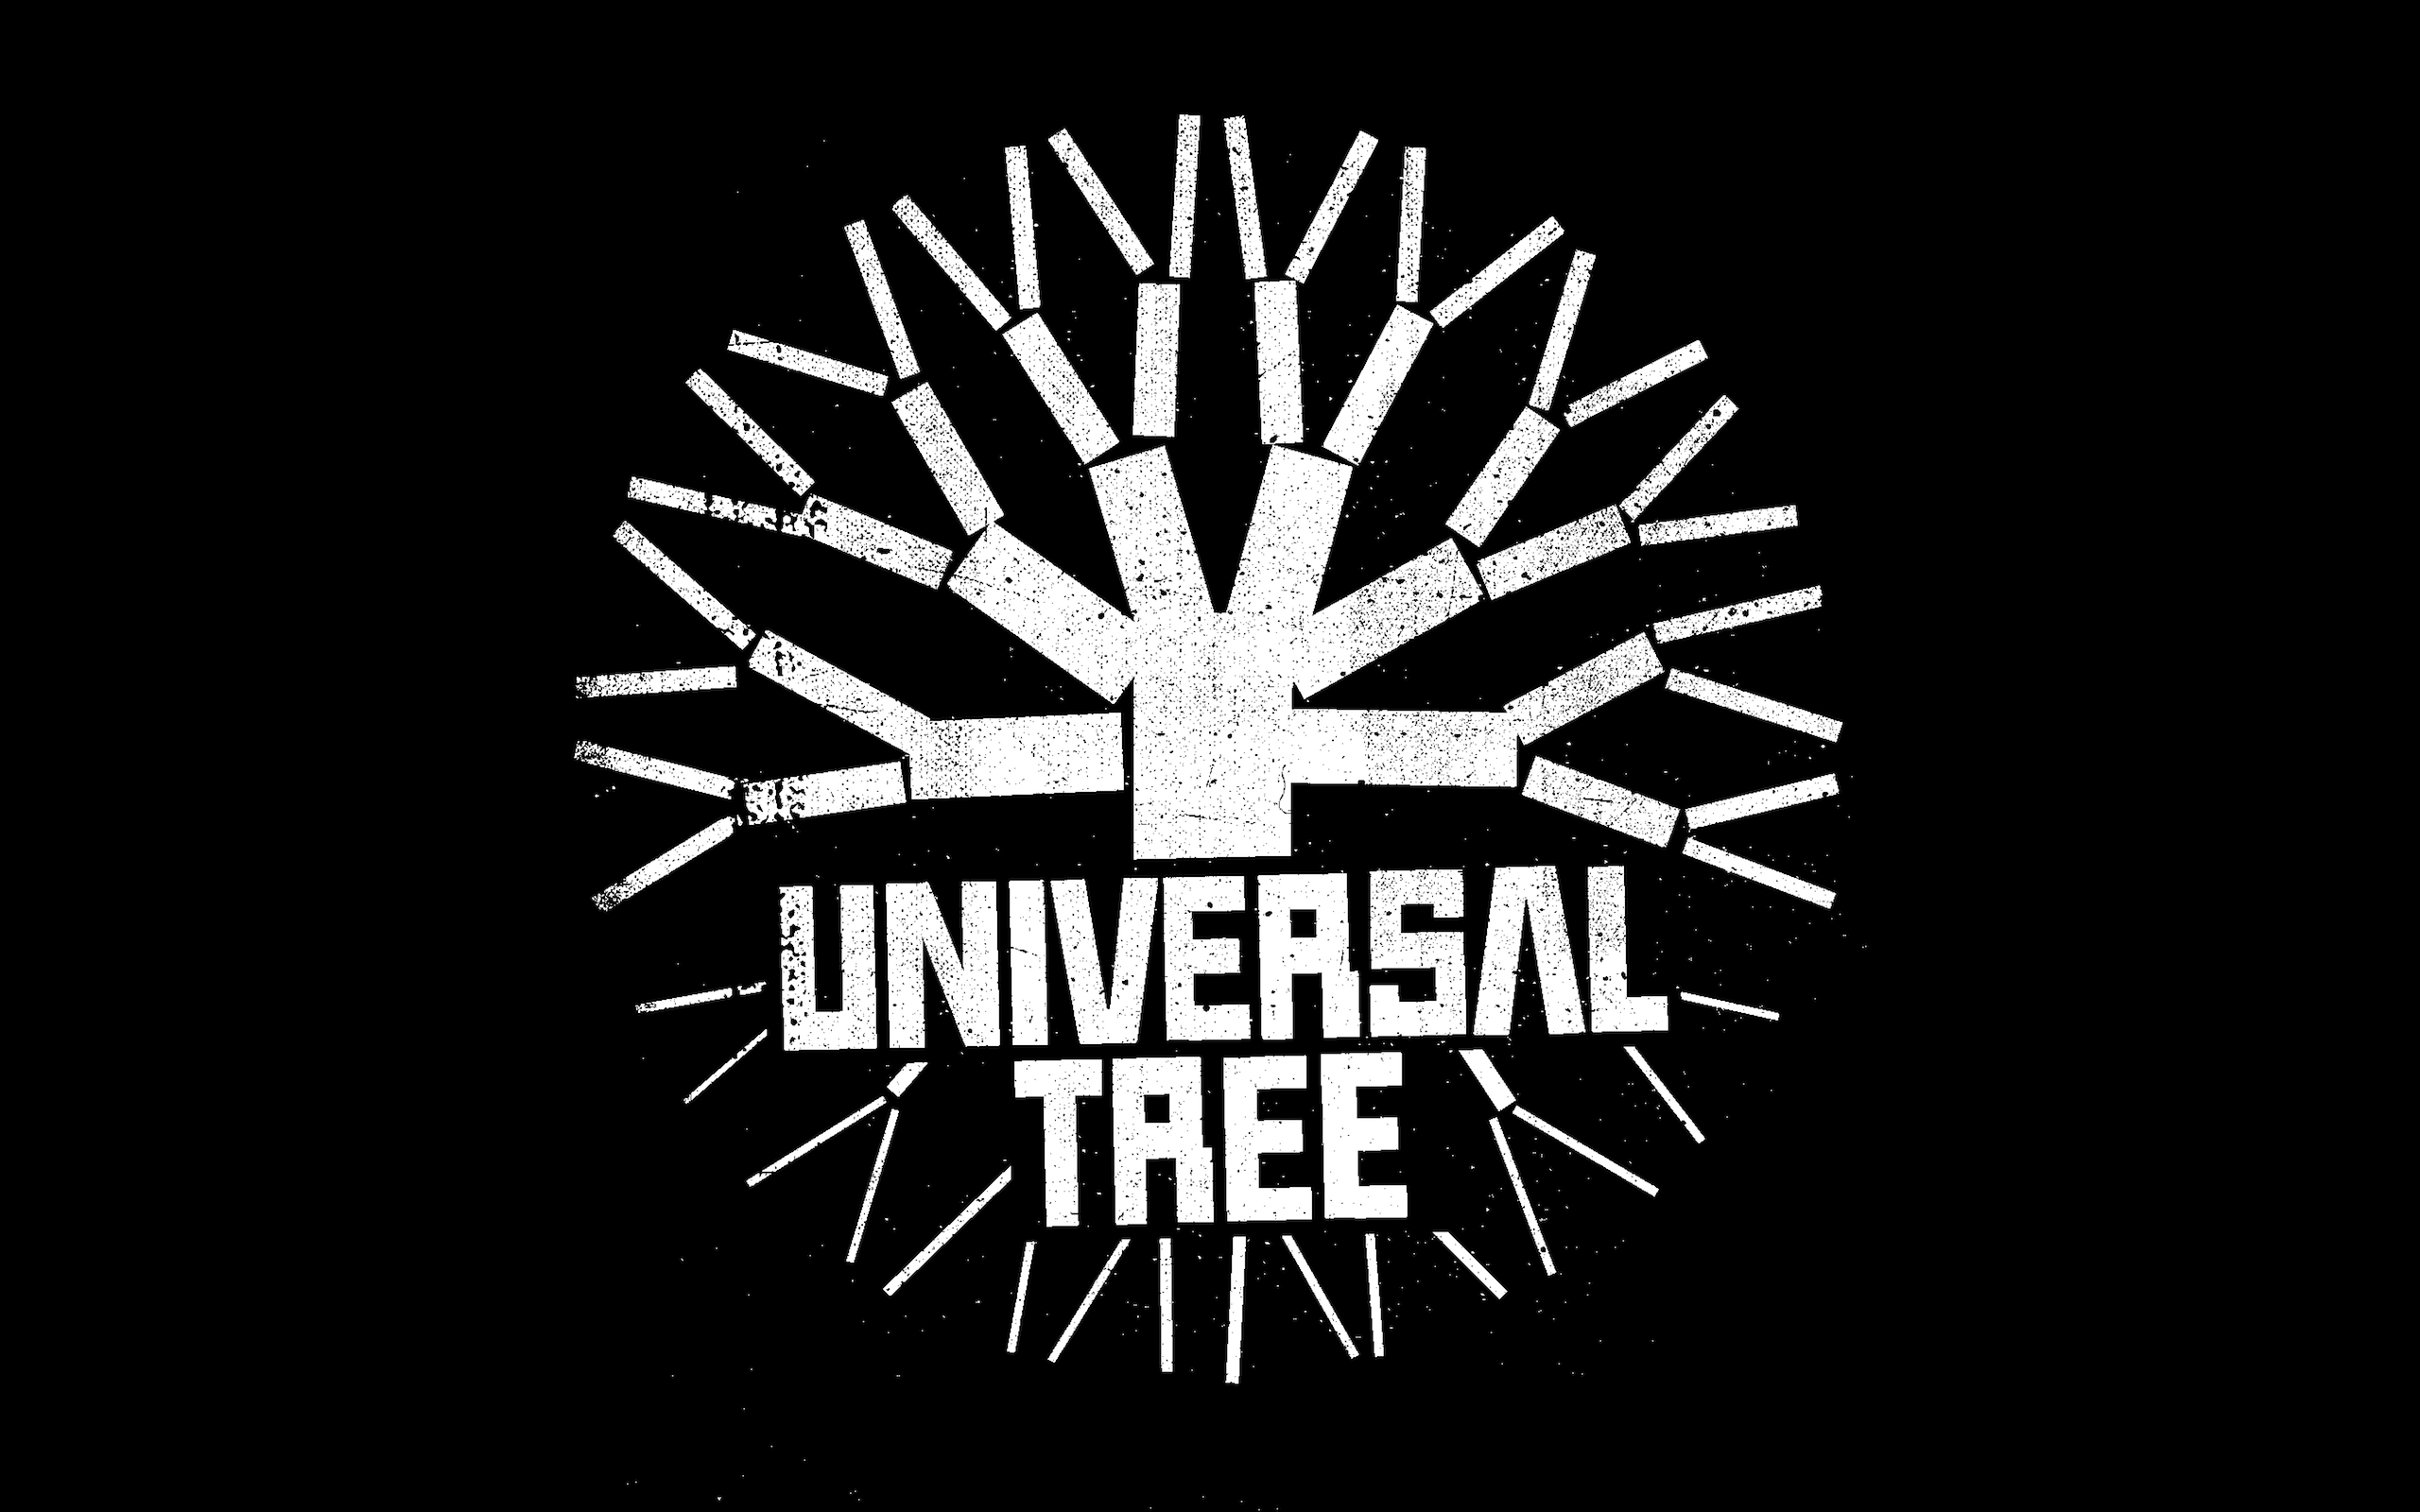 Universal Tree // Matic Mouth